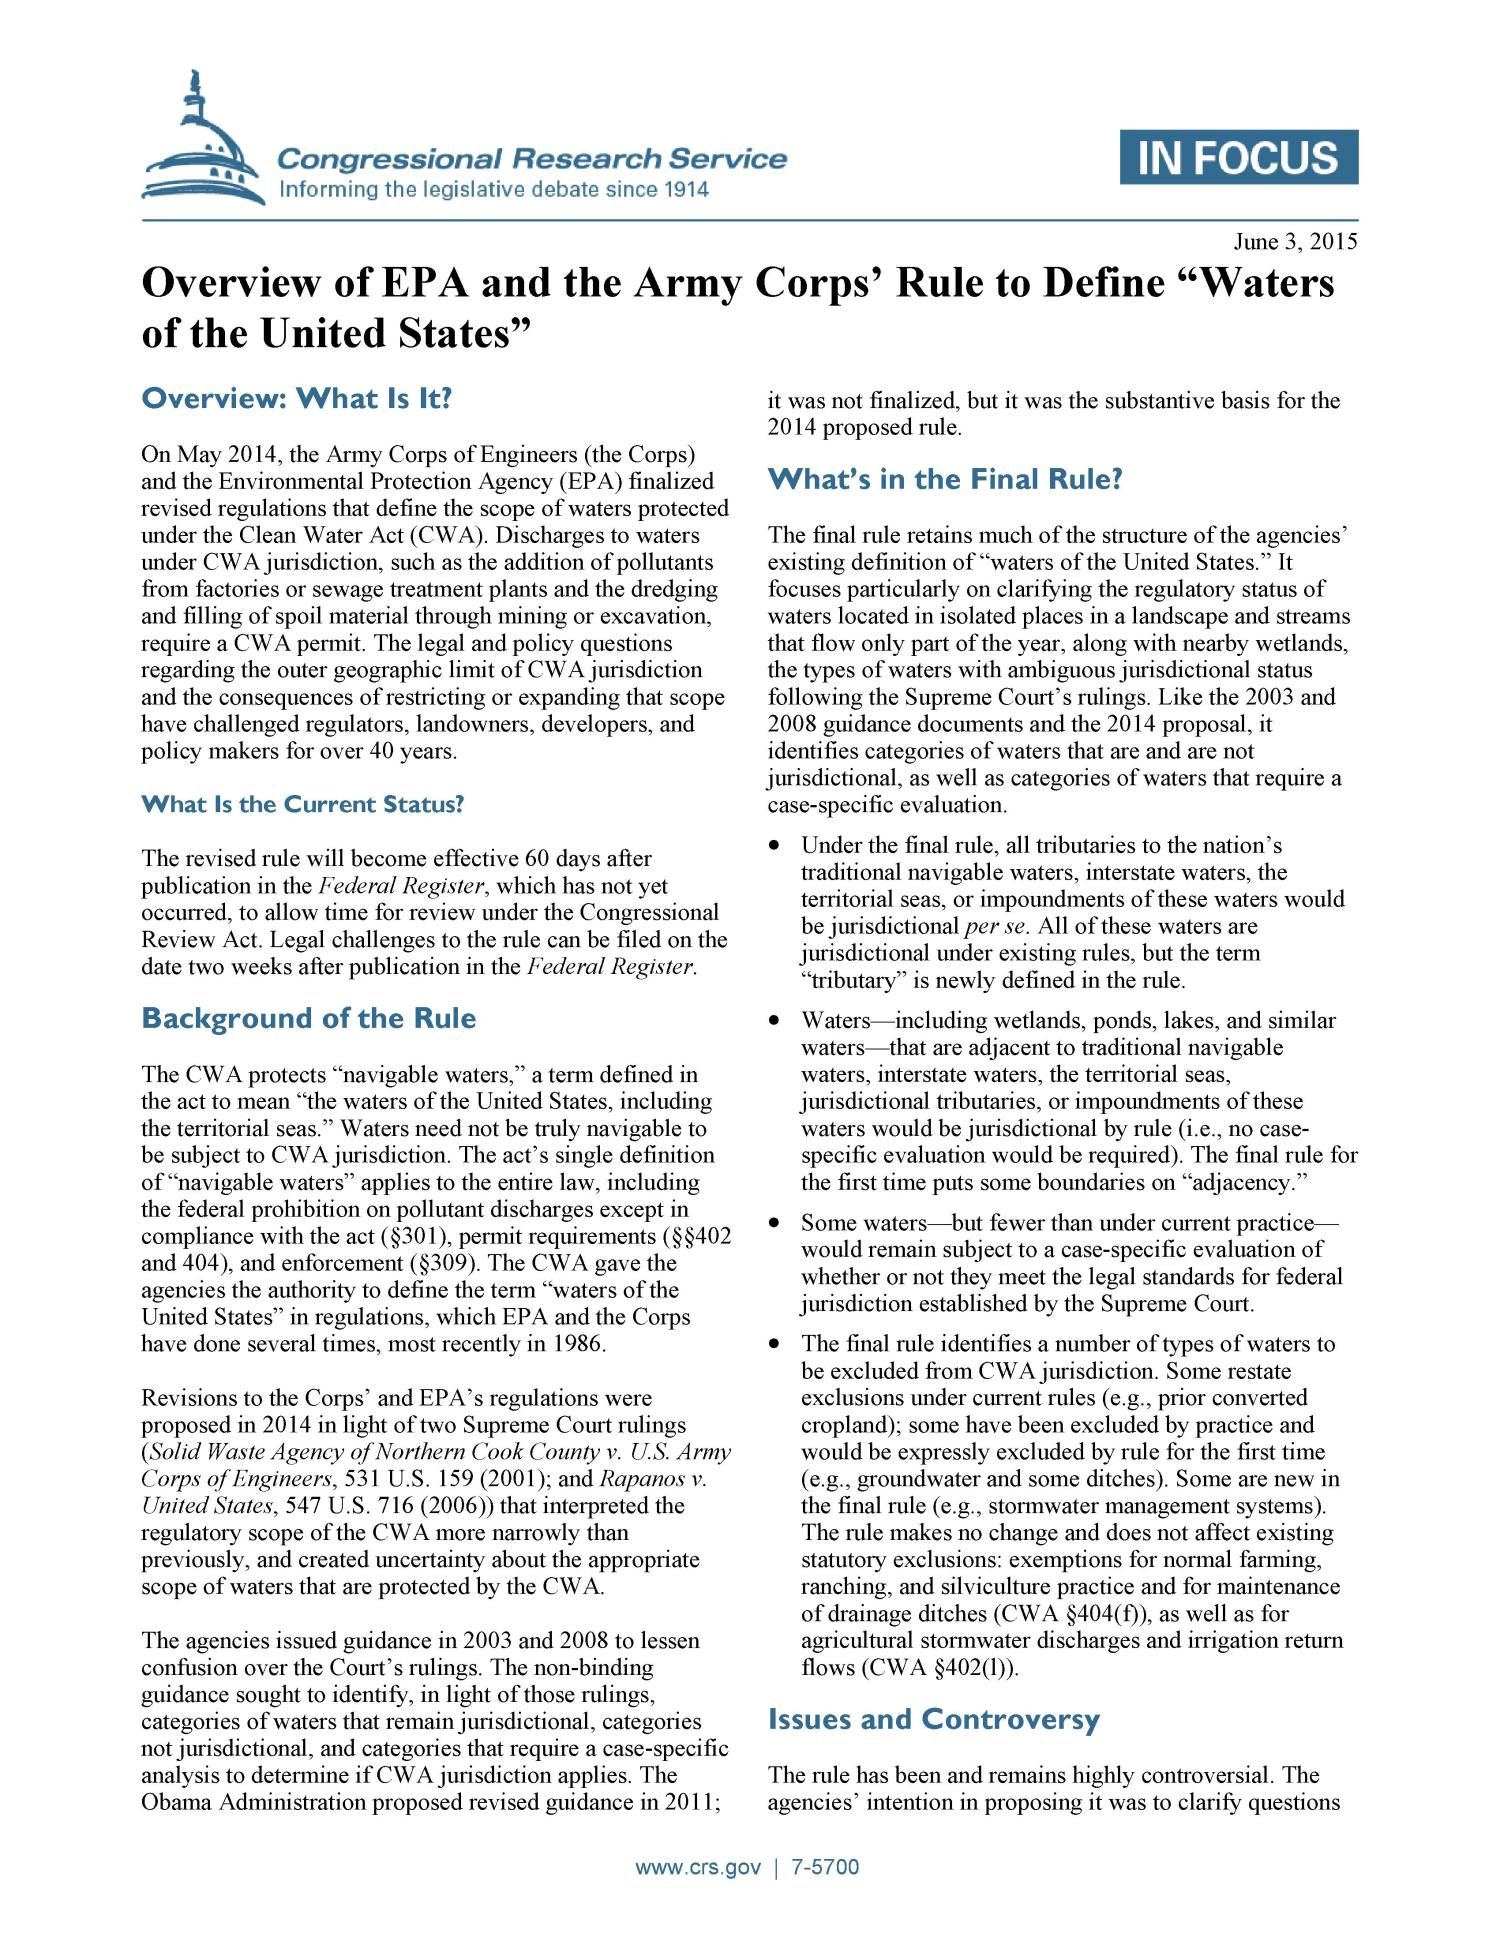 """Overview of EPA and the Army Corps' Rule to Define """"Waters"""